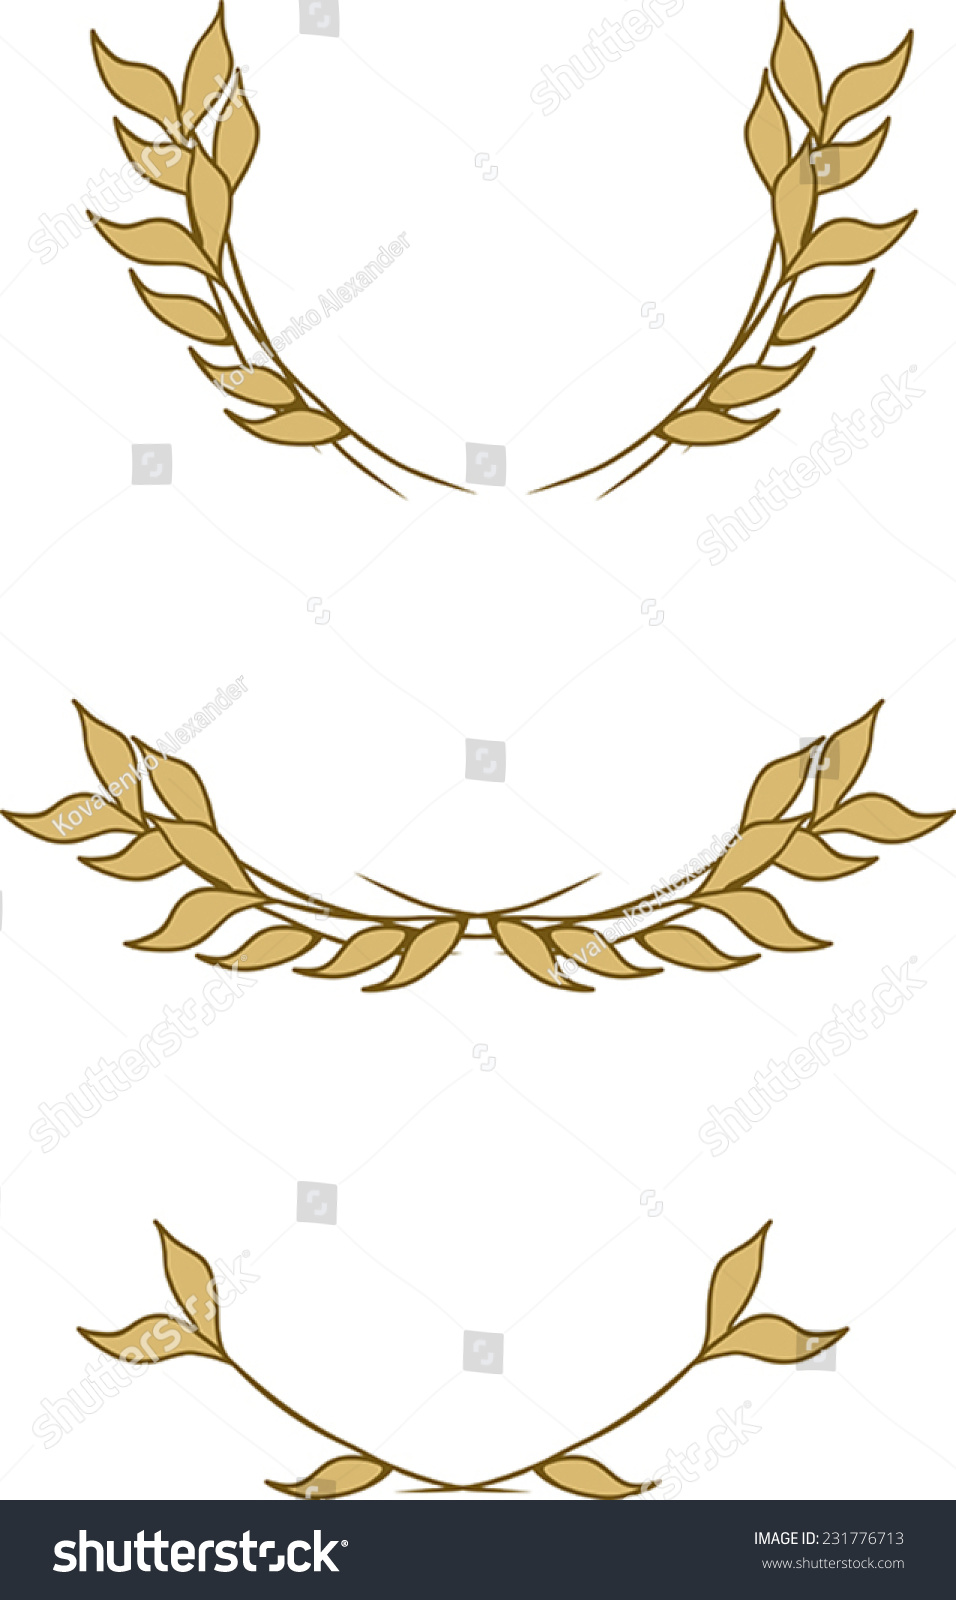 Of Wreaths Set Wreaths Leaves Stock Vector 231776713 Shutterstock